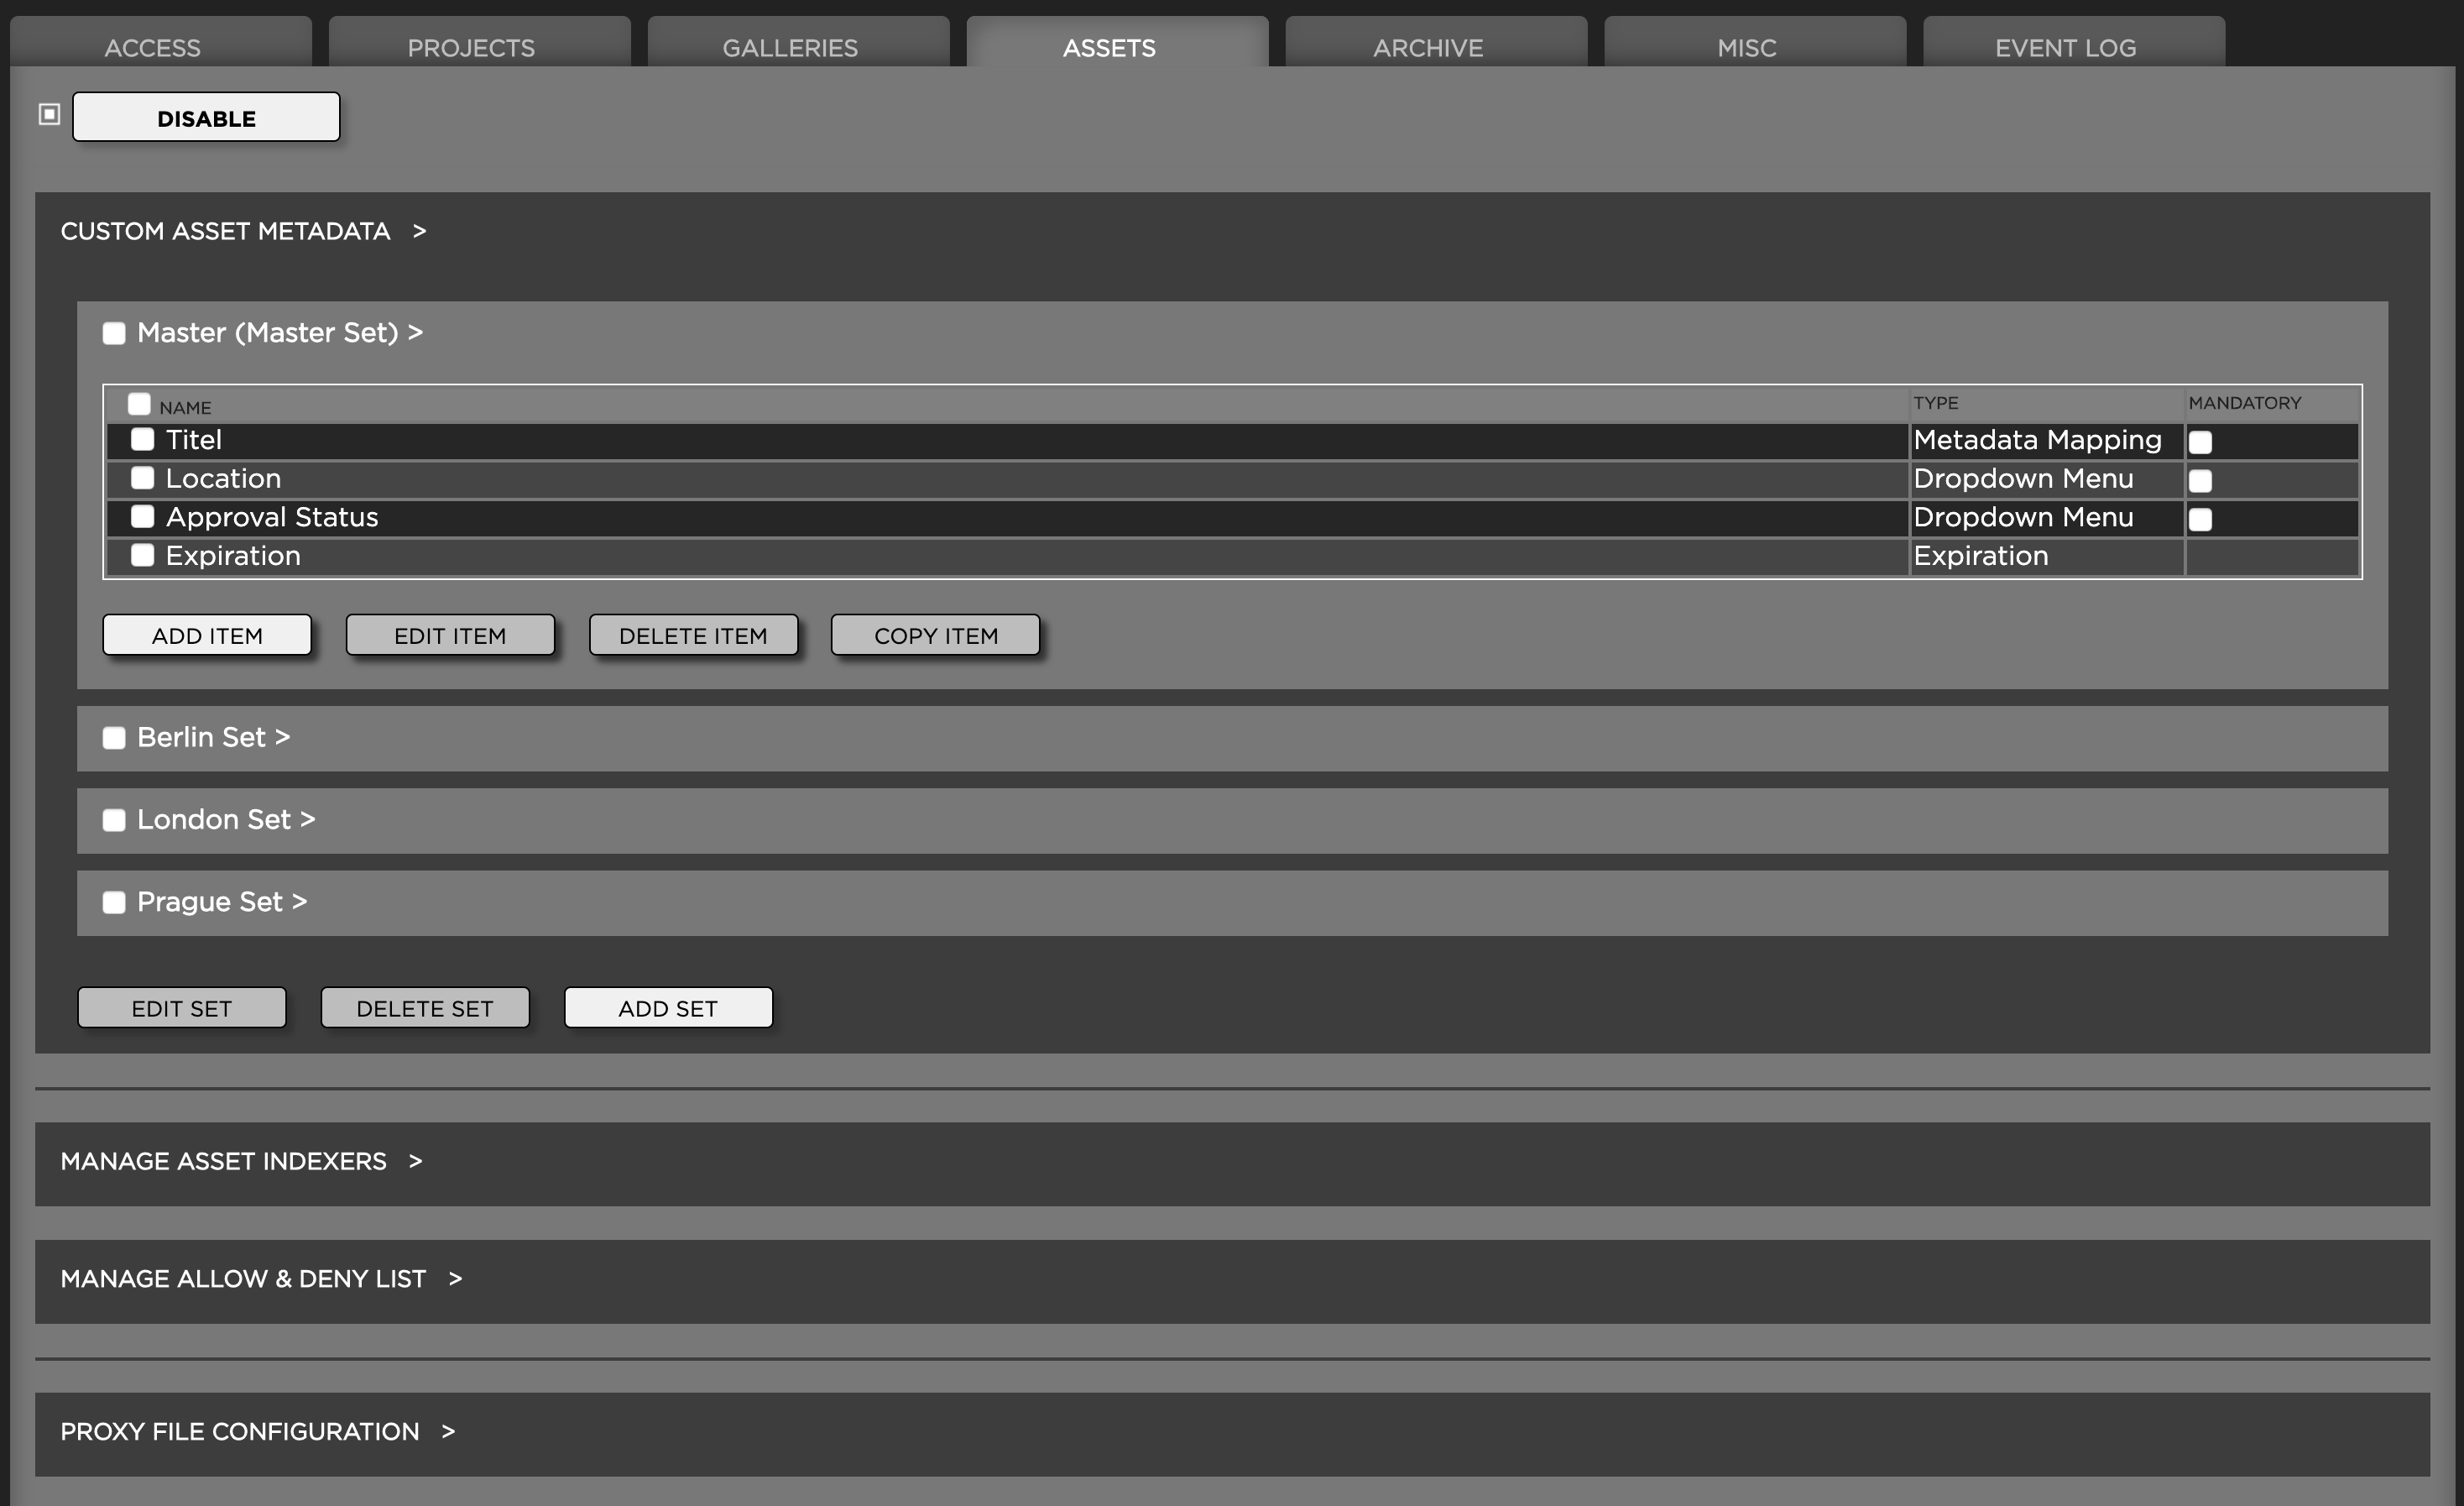 Custom Asset Metadata Screenshot